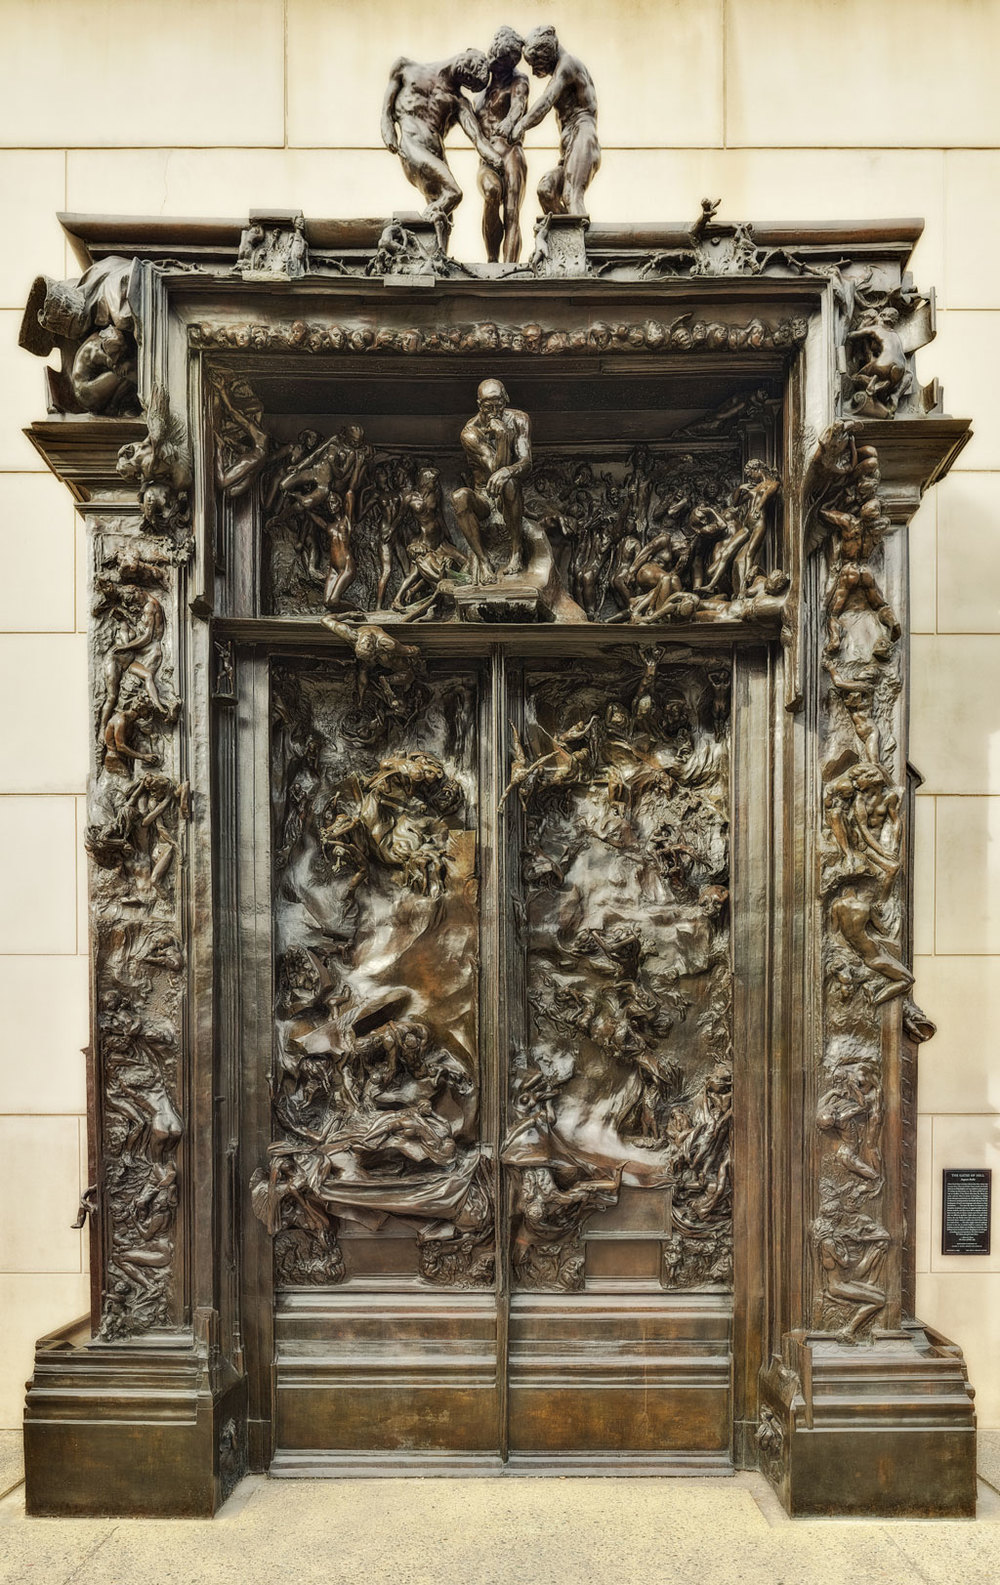 The_Gates_of_Hell2-1024.jpg?format=1000w&content-type=image%2Fjpeg